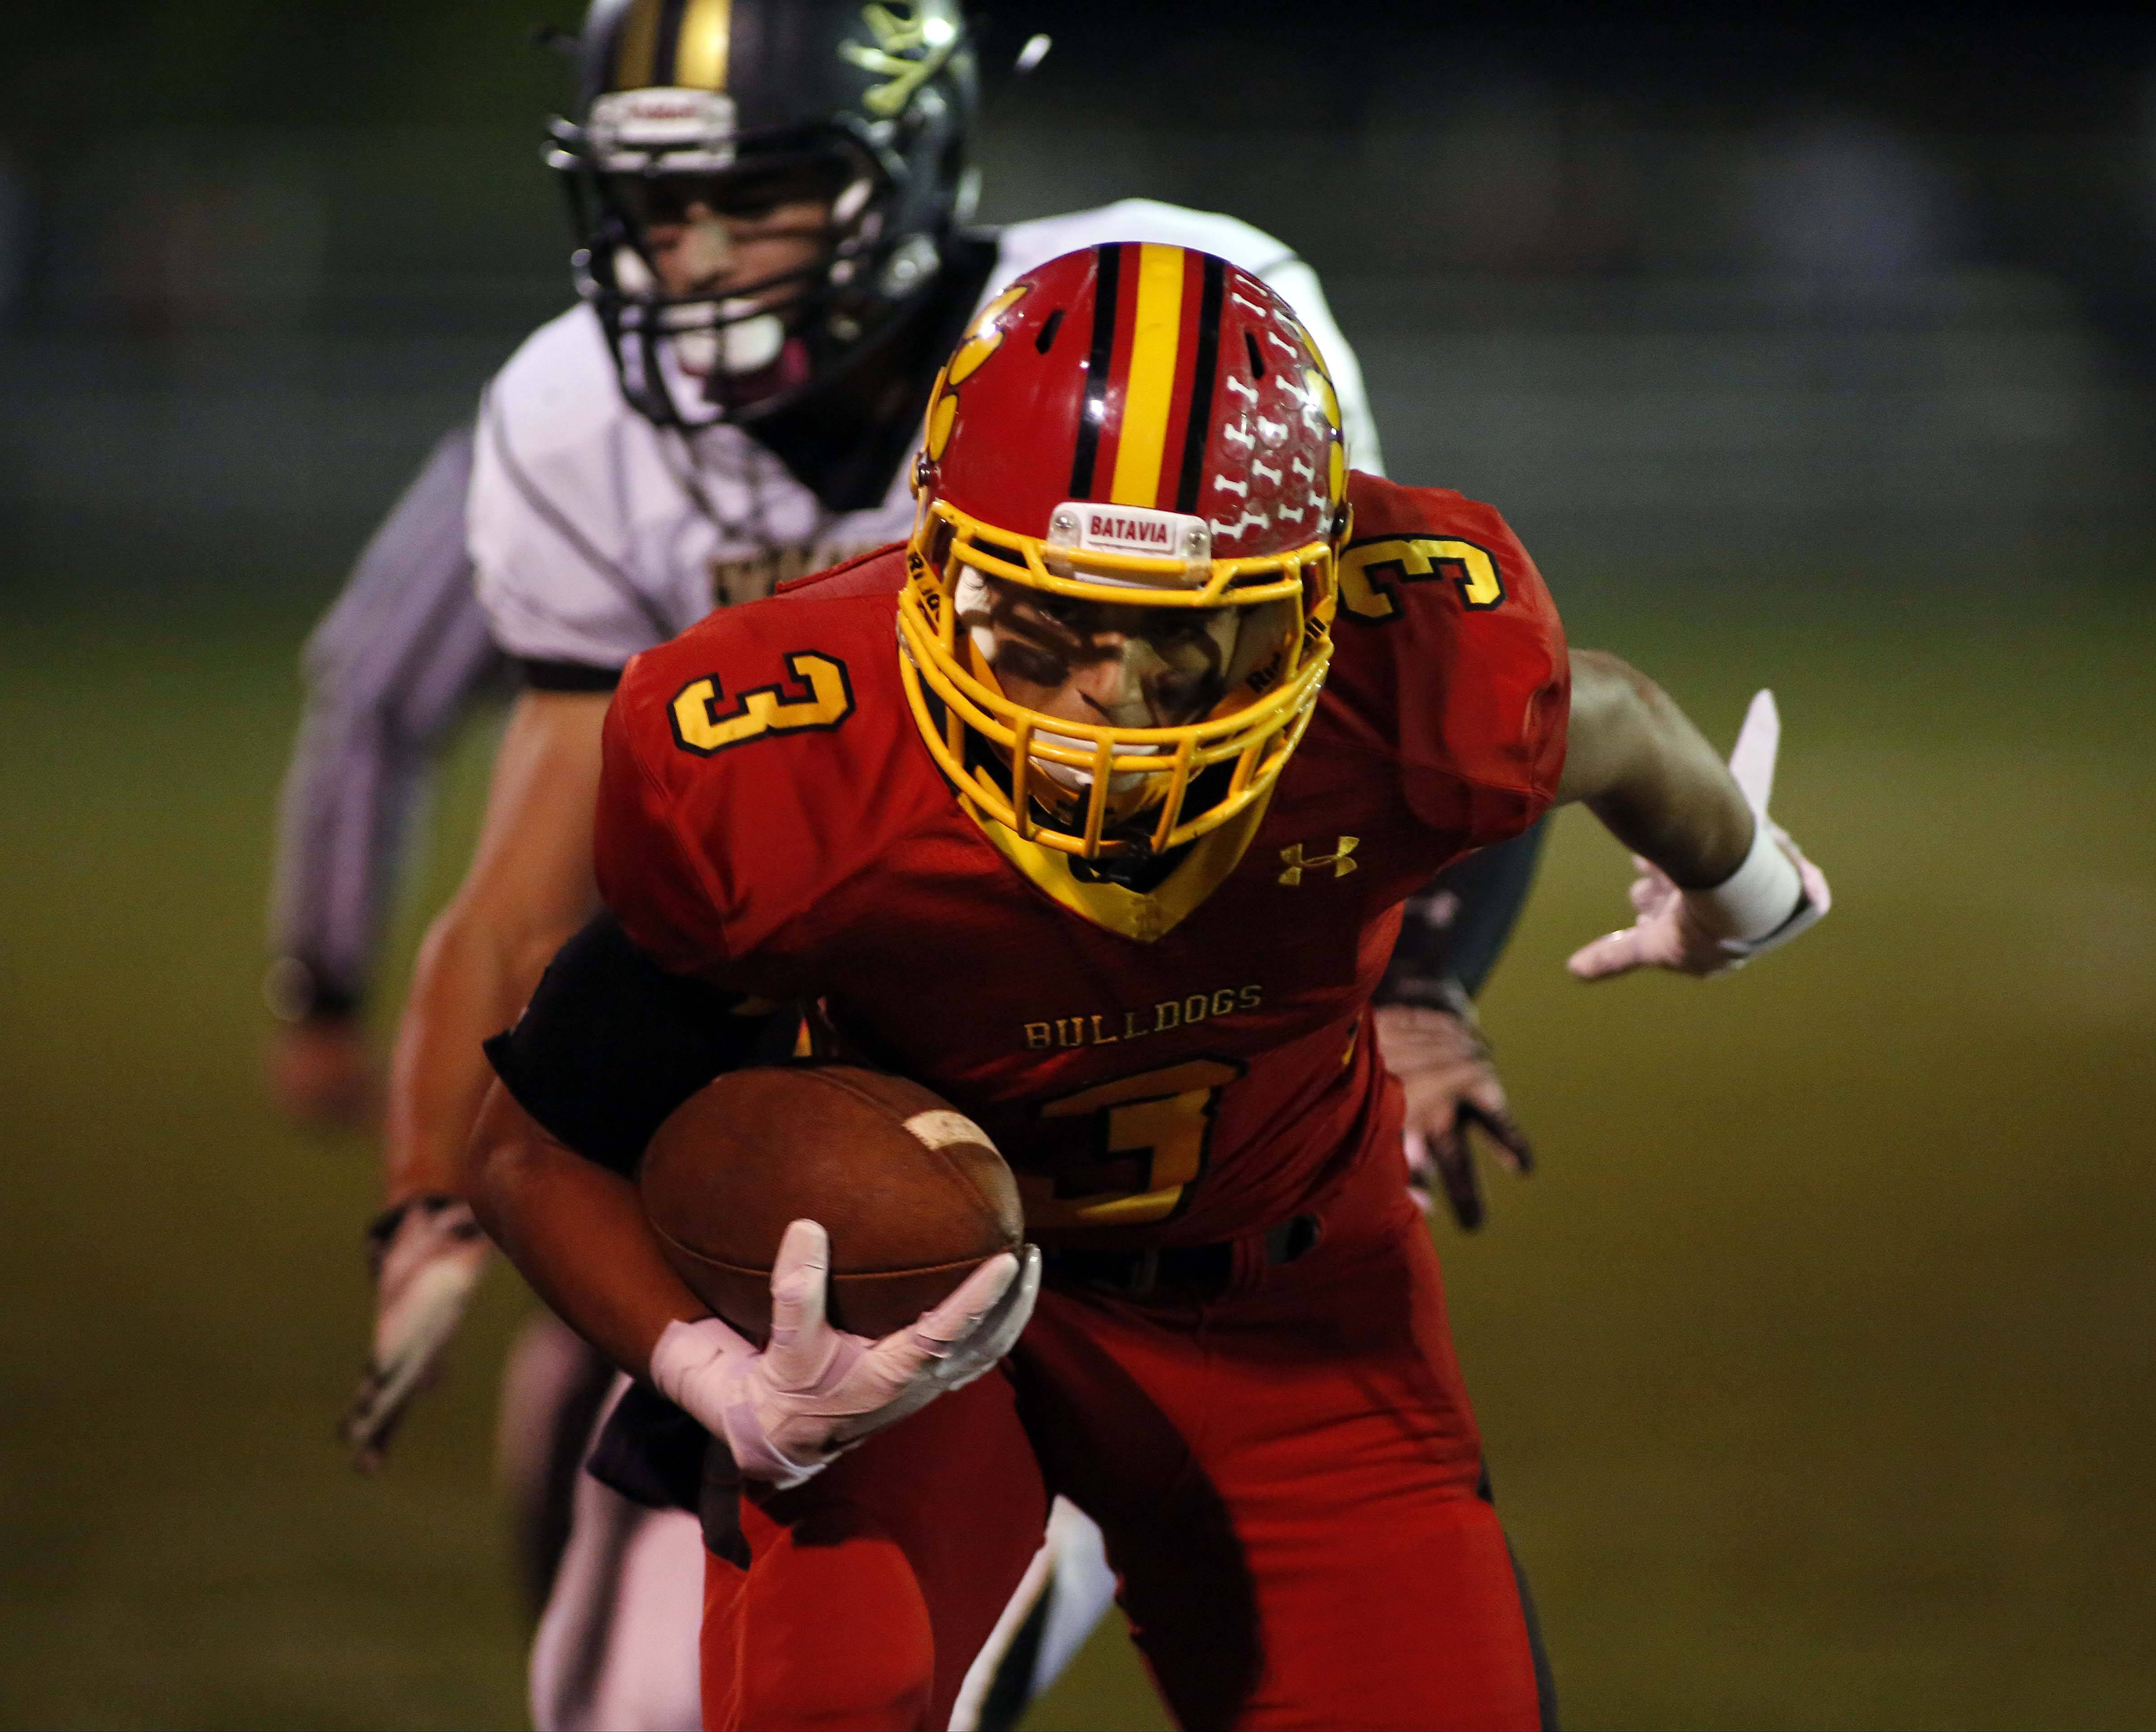 Week -9- Photos from the Streamwood at Batavia football game on Friday, Oct. 24 in Batavia.